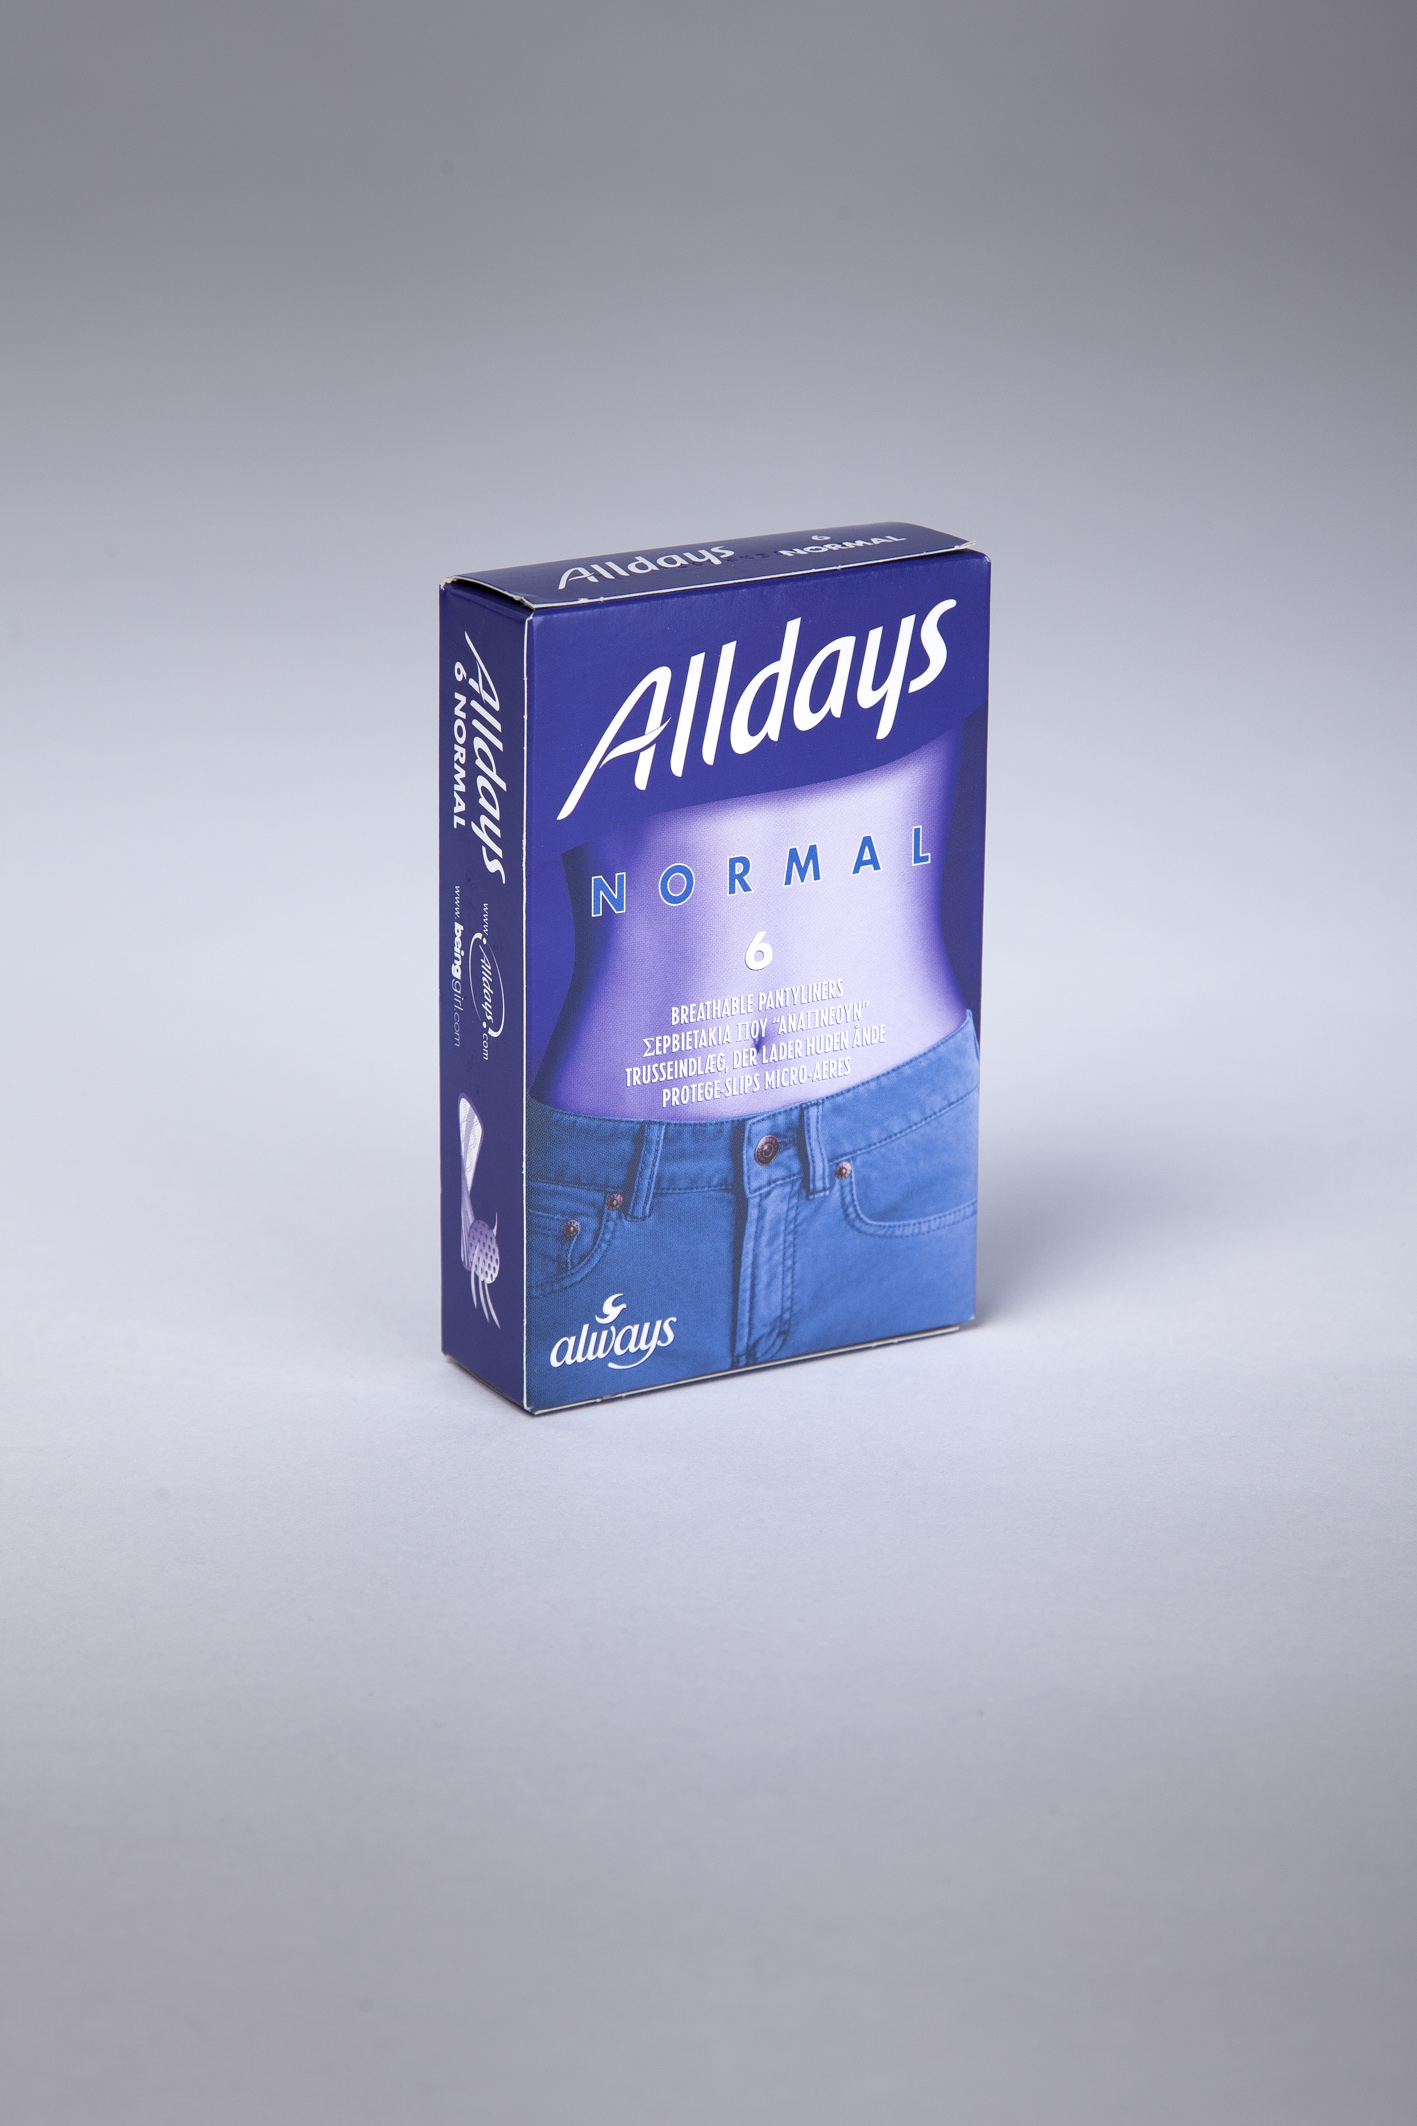 Always Alldays 6 Normal Liners